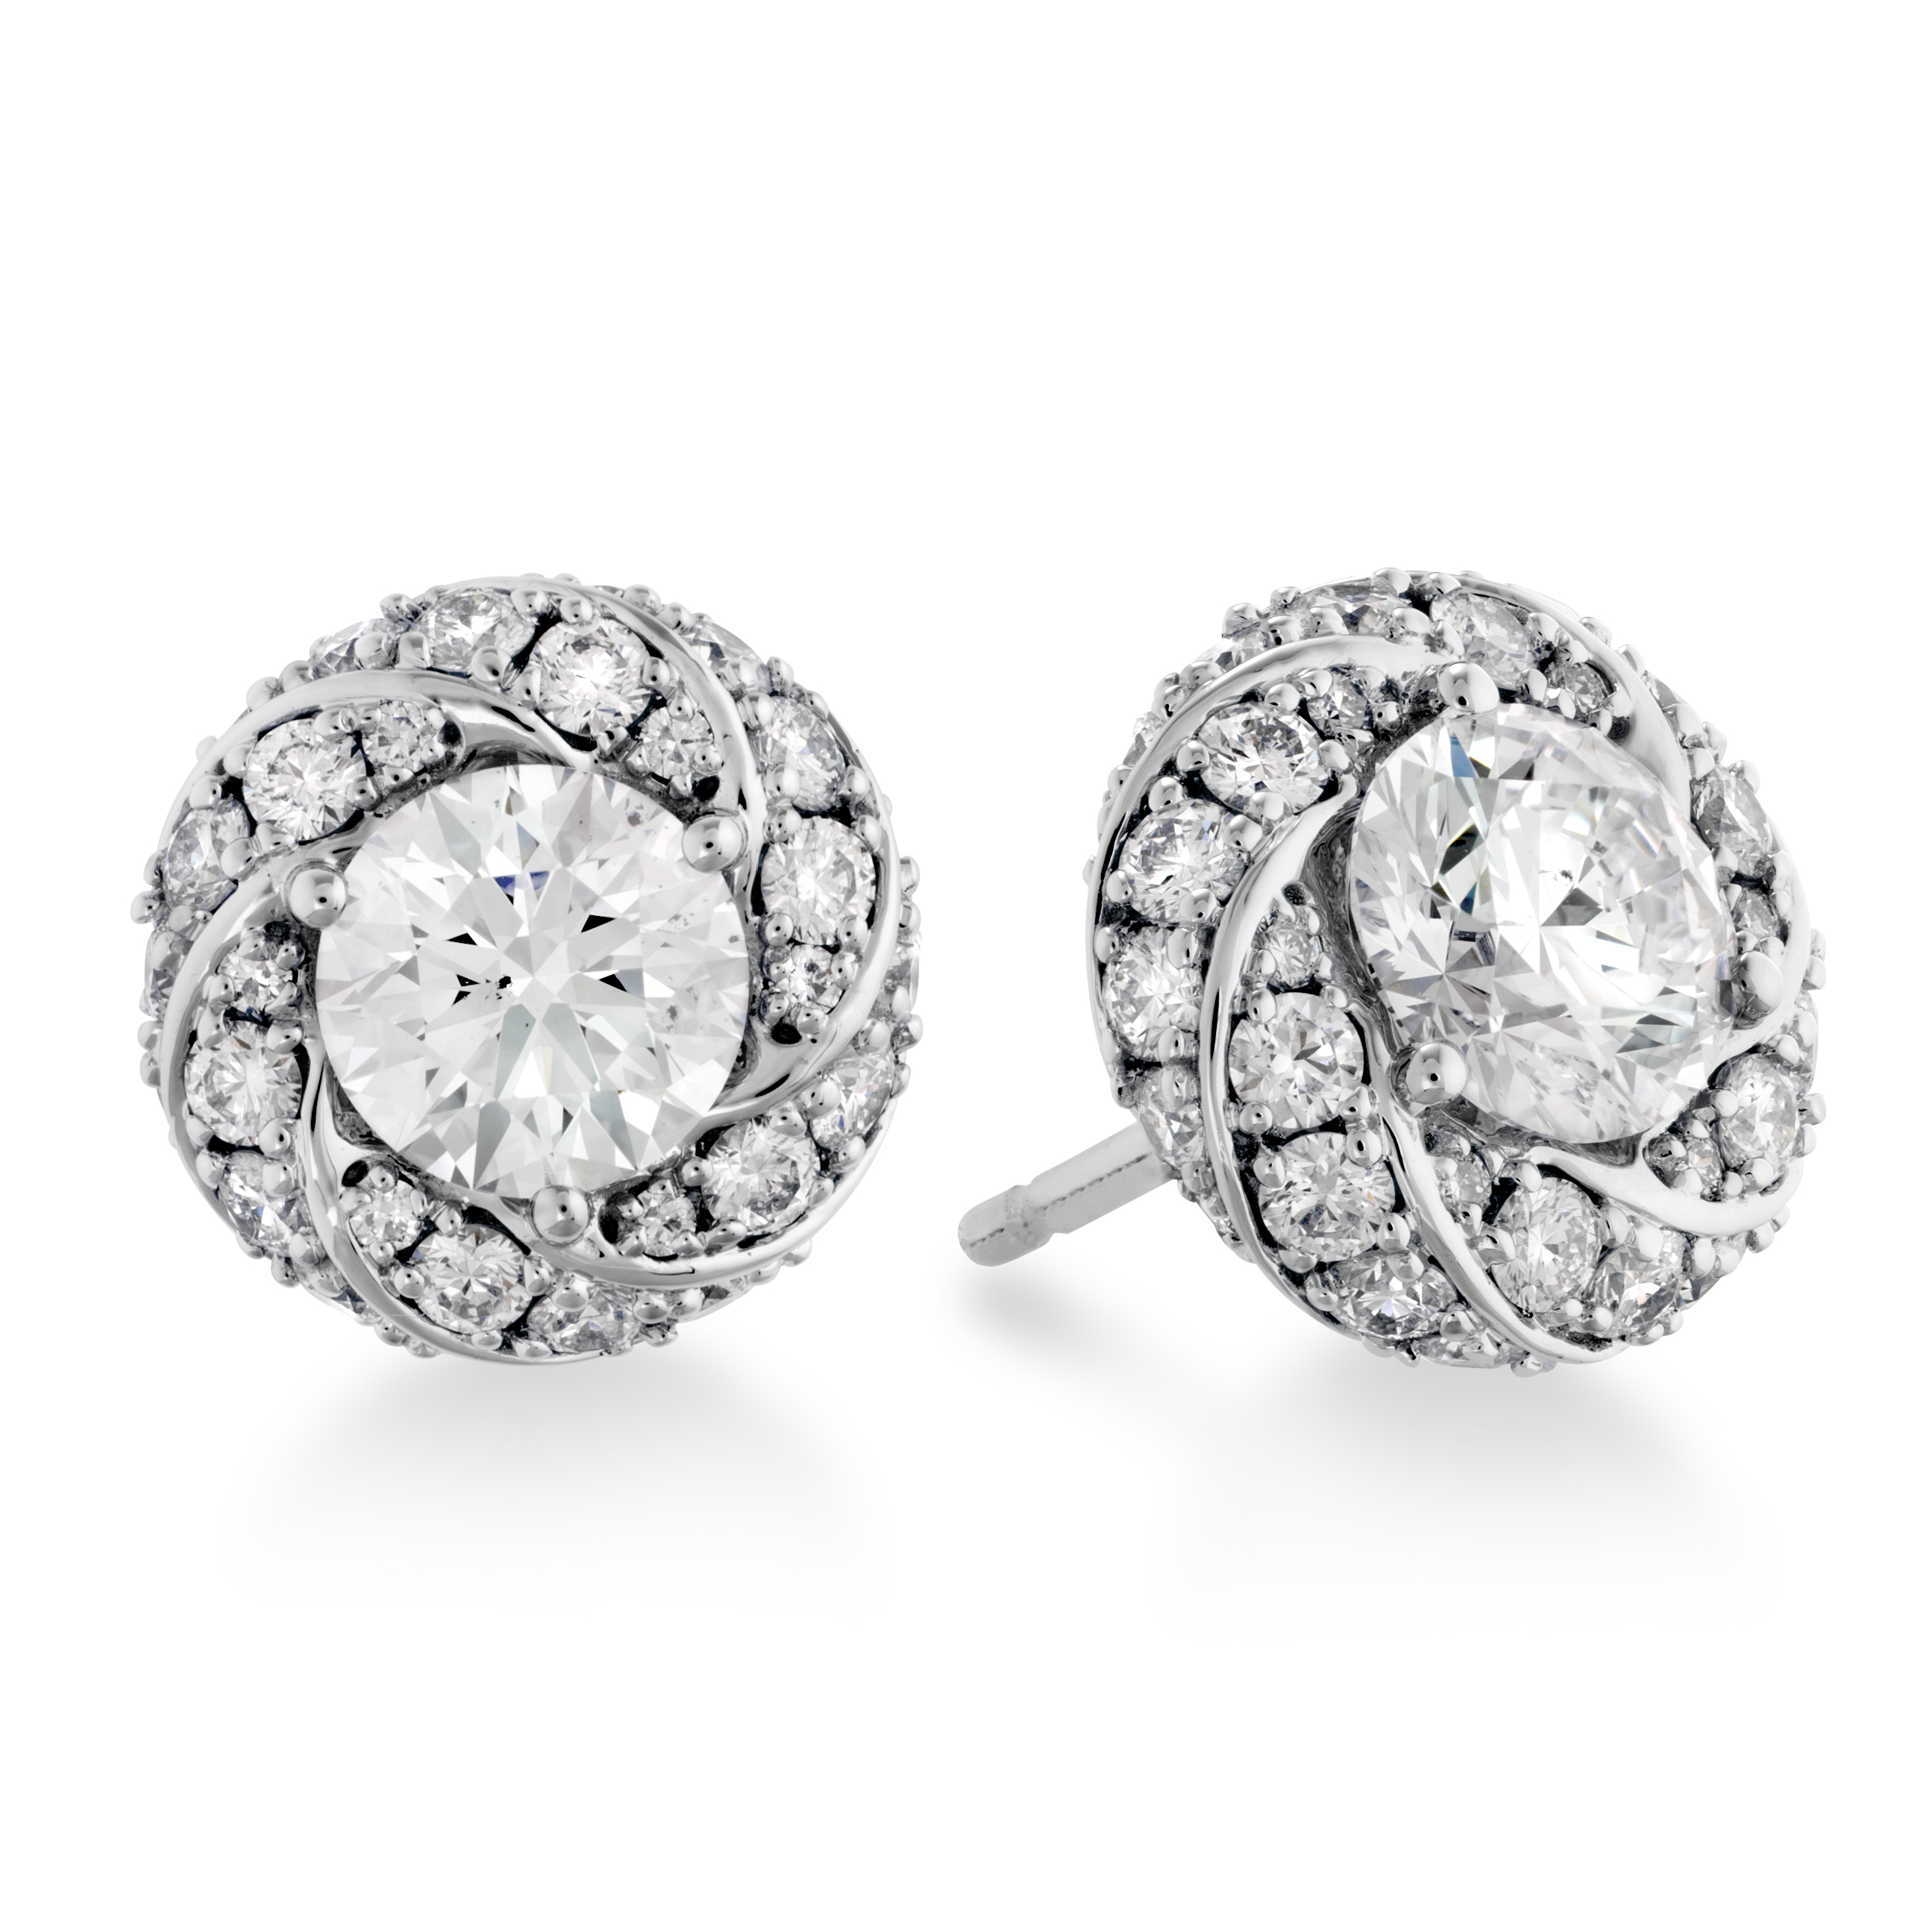 products quartz antiques cognac earrings bancroft white diamond gold antique img stud